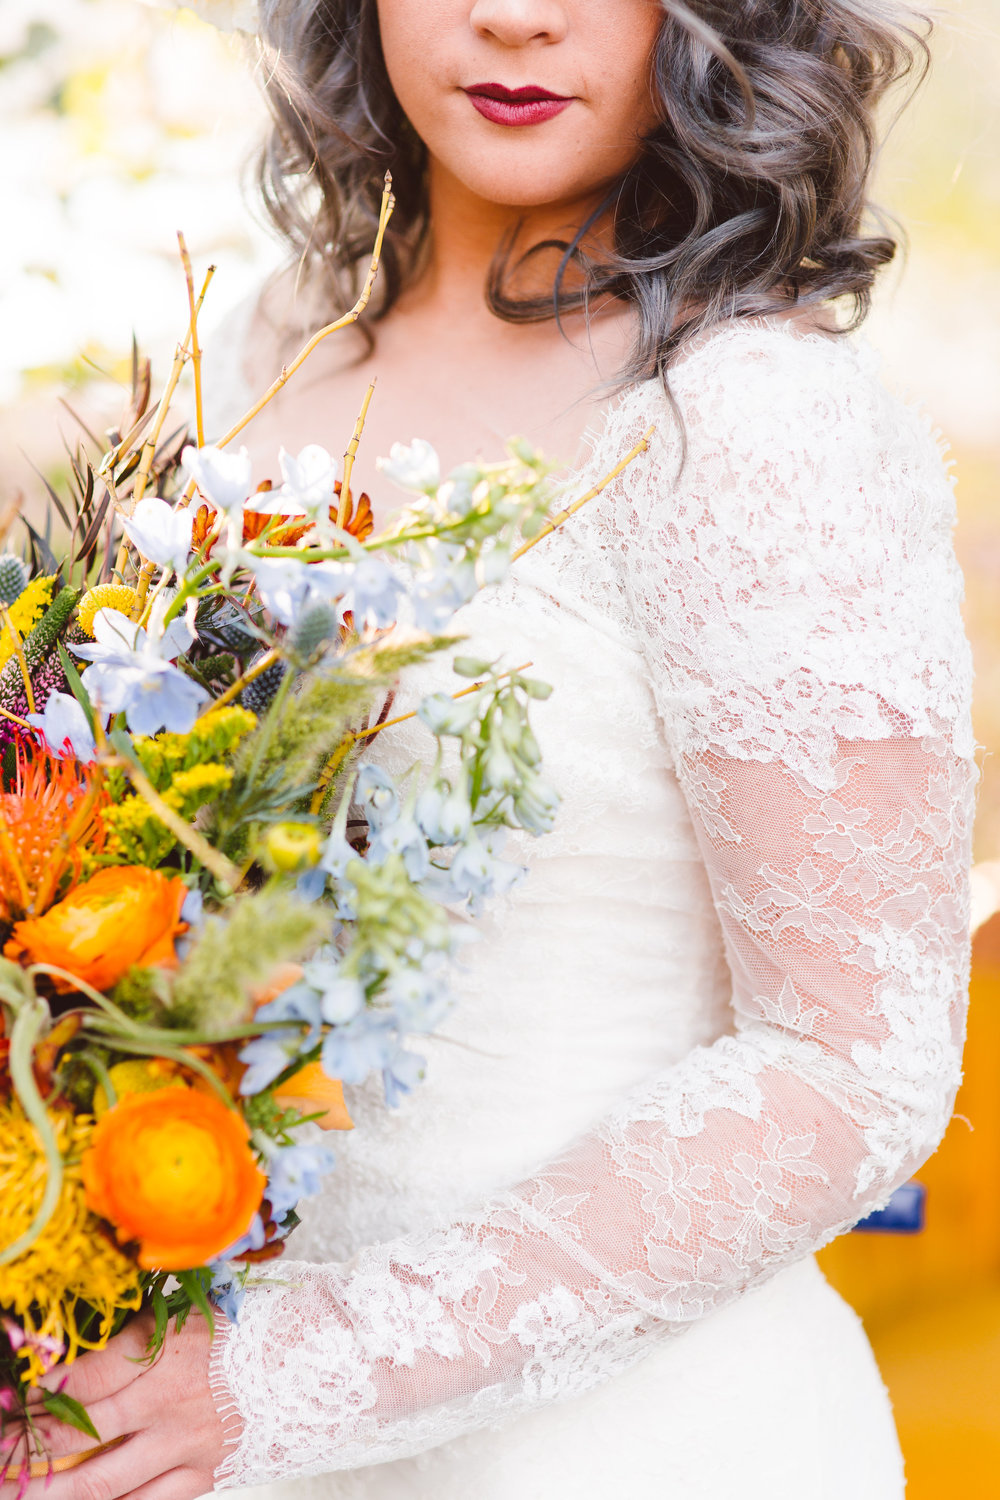 Boho Bride lace dress and bouquet